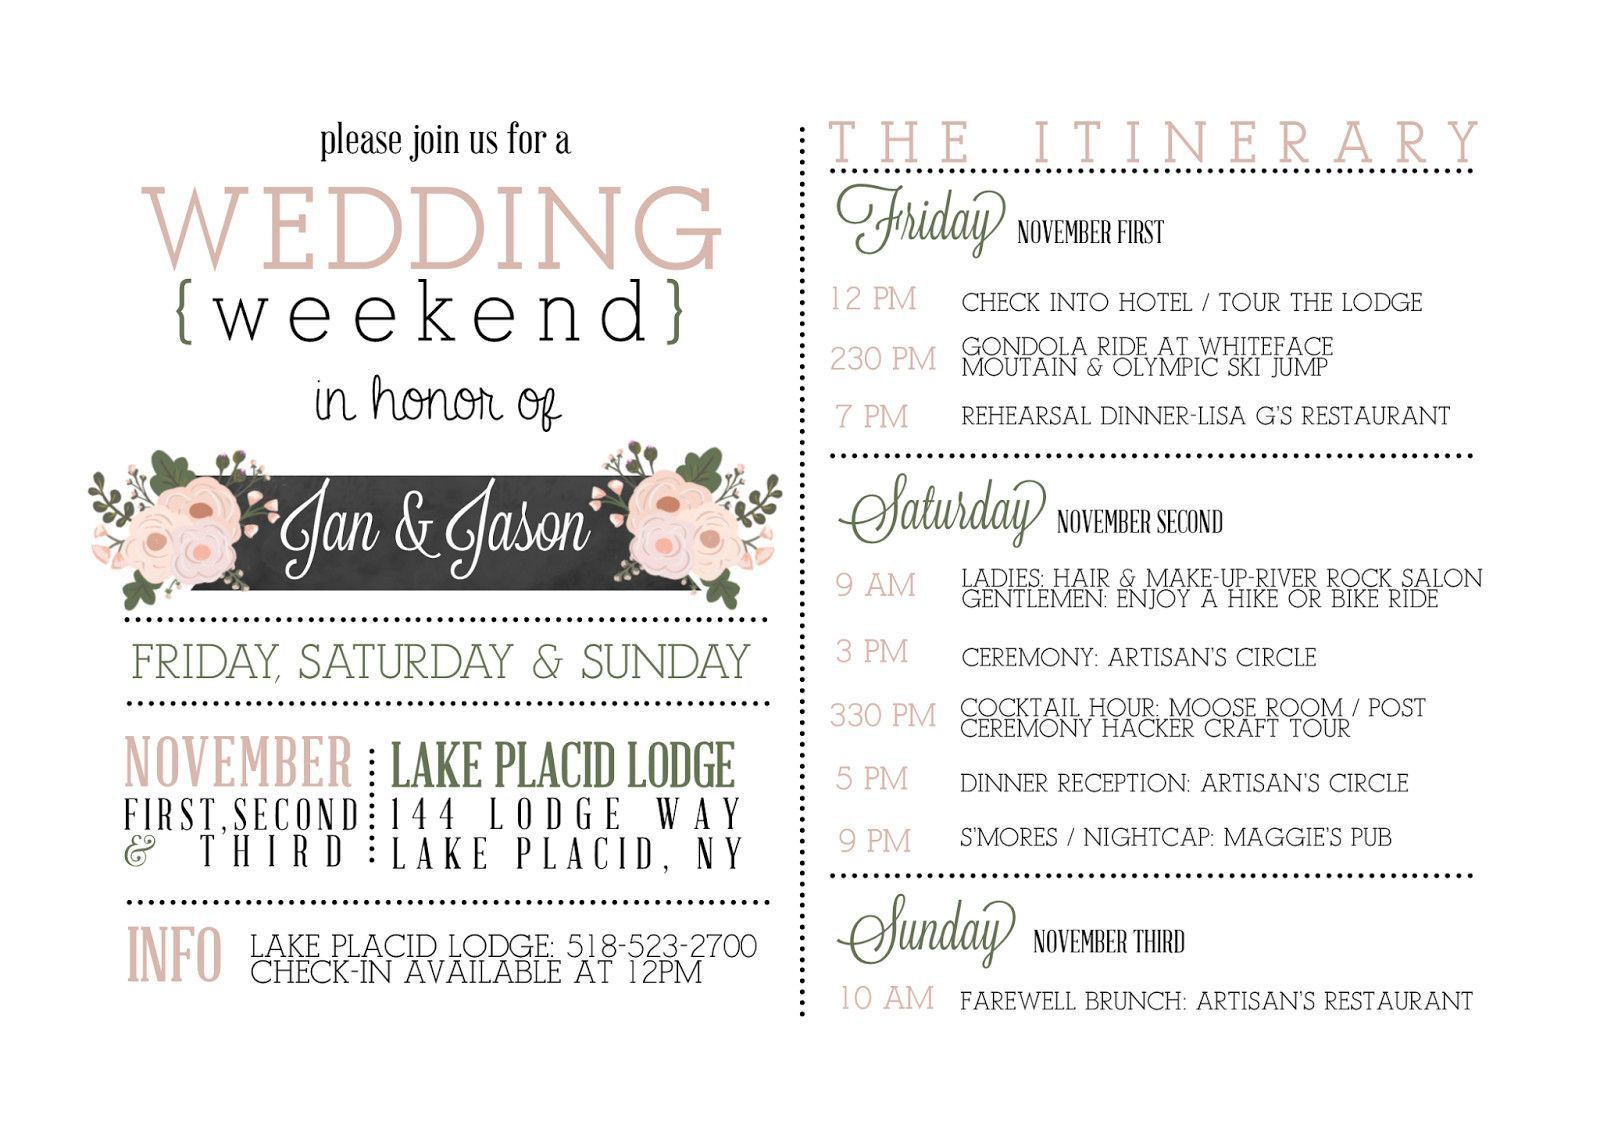 000 Beautiful Wedding Weekend Itinerary Template High Def  Day Word Reception Timeline ExcelFull